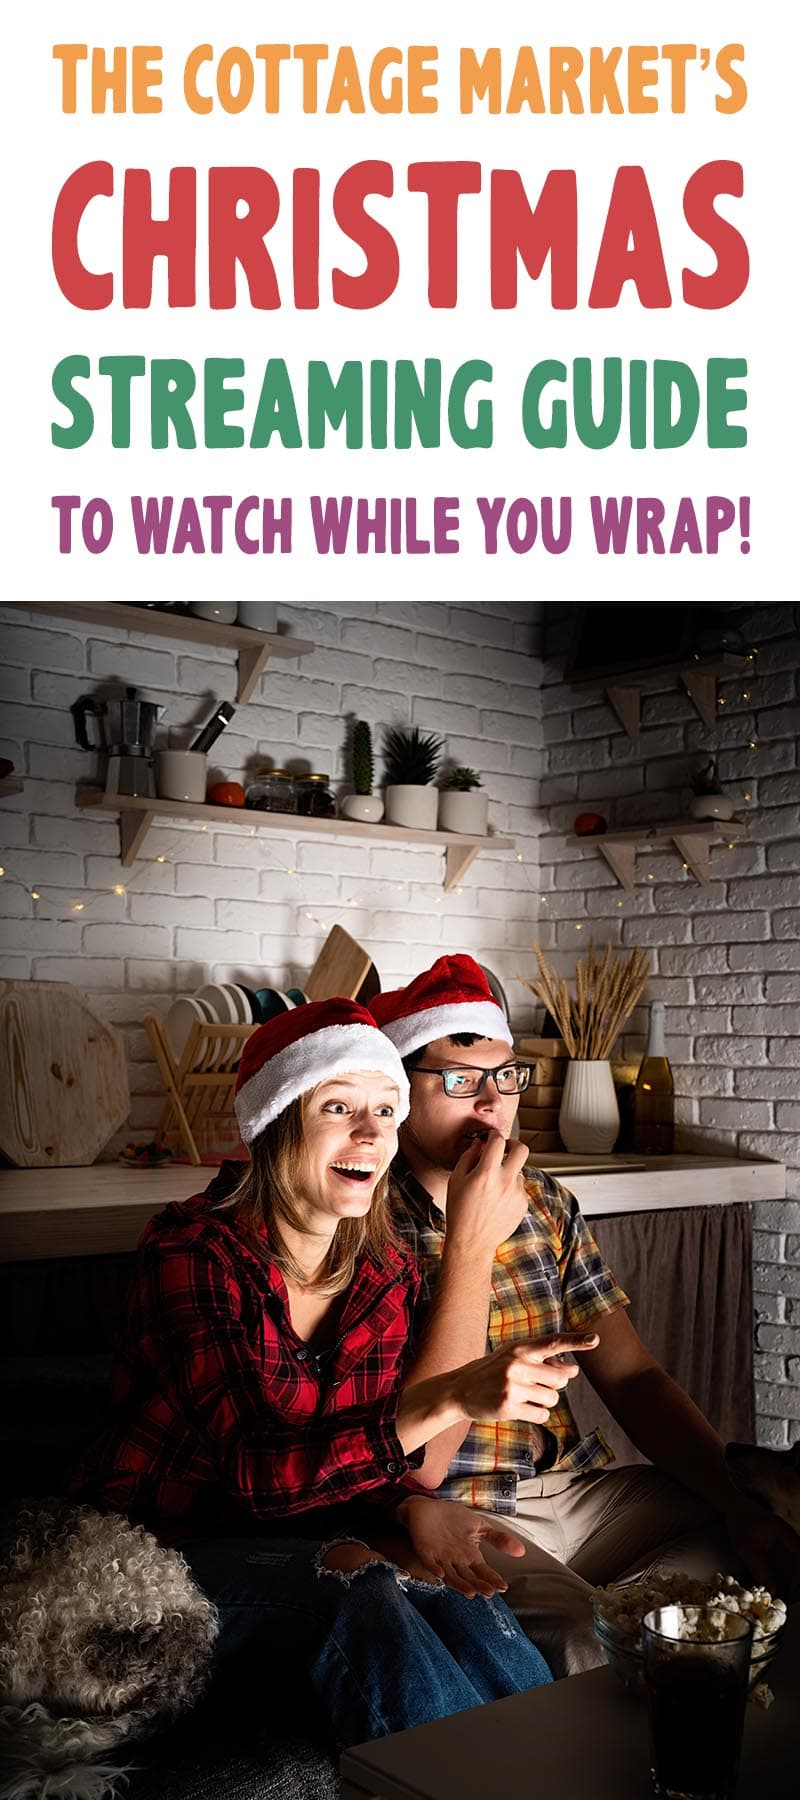 Here is a fun and merry Christmas Streaming Guide to Watch While You Wrap! Some new ones and some classics to enjoy!